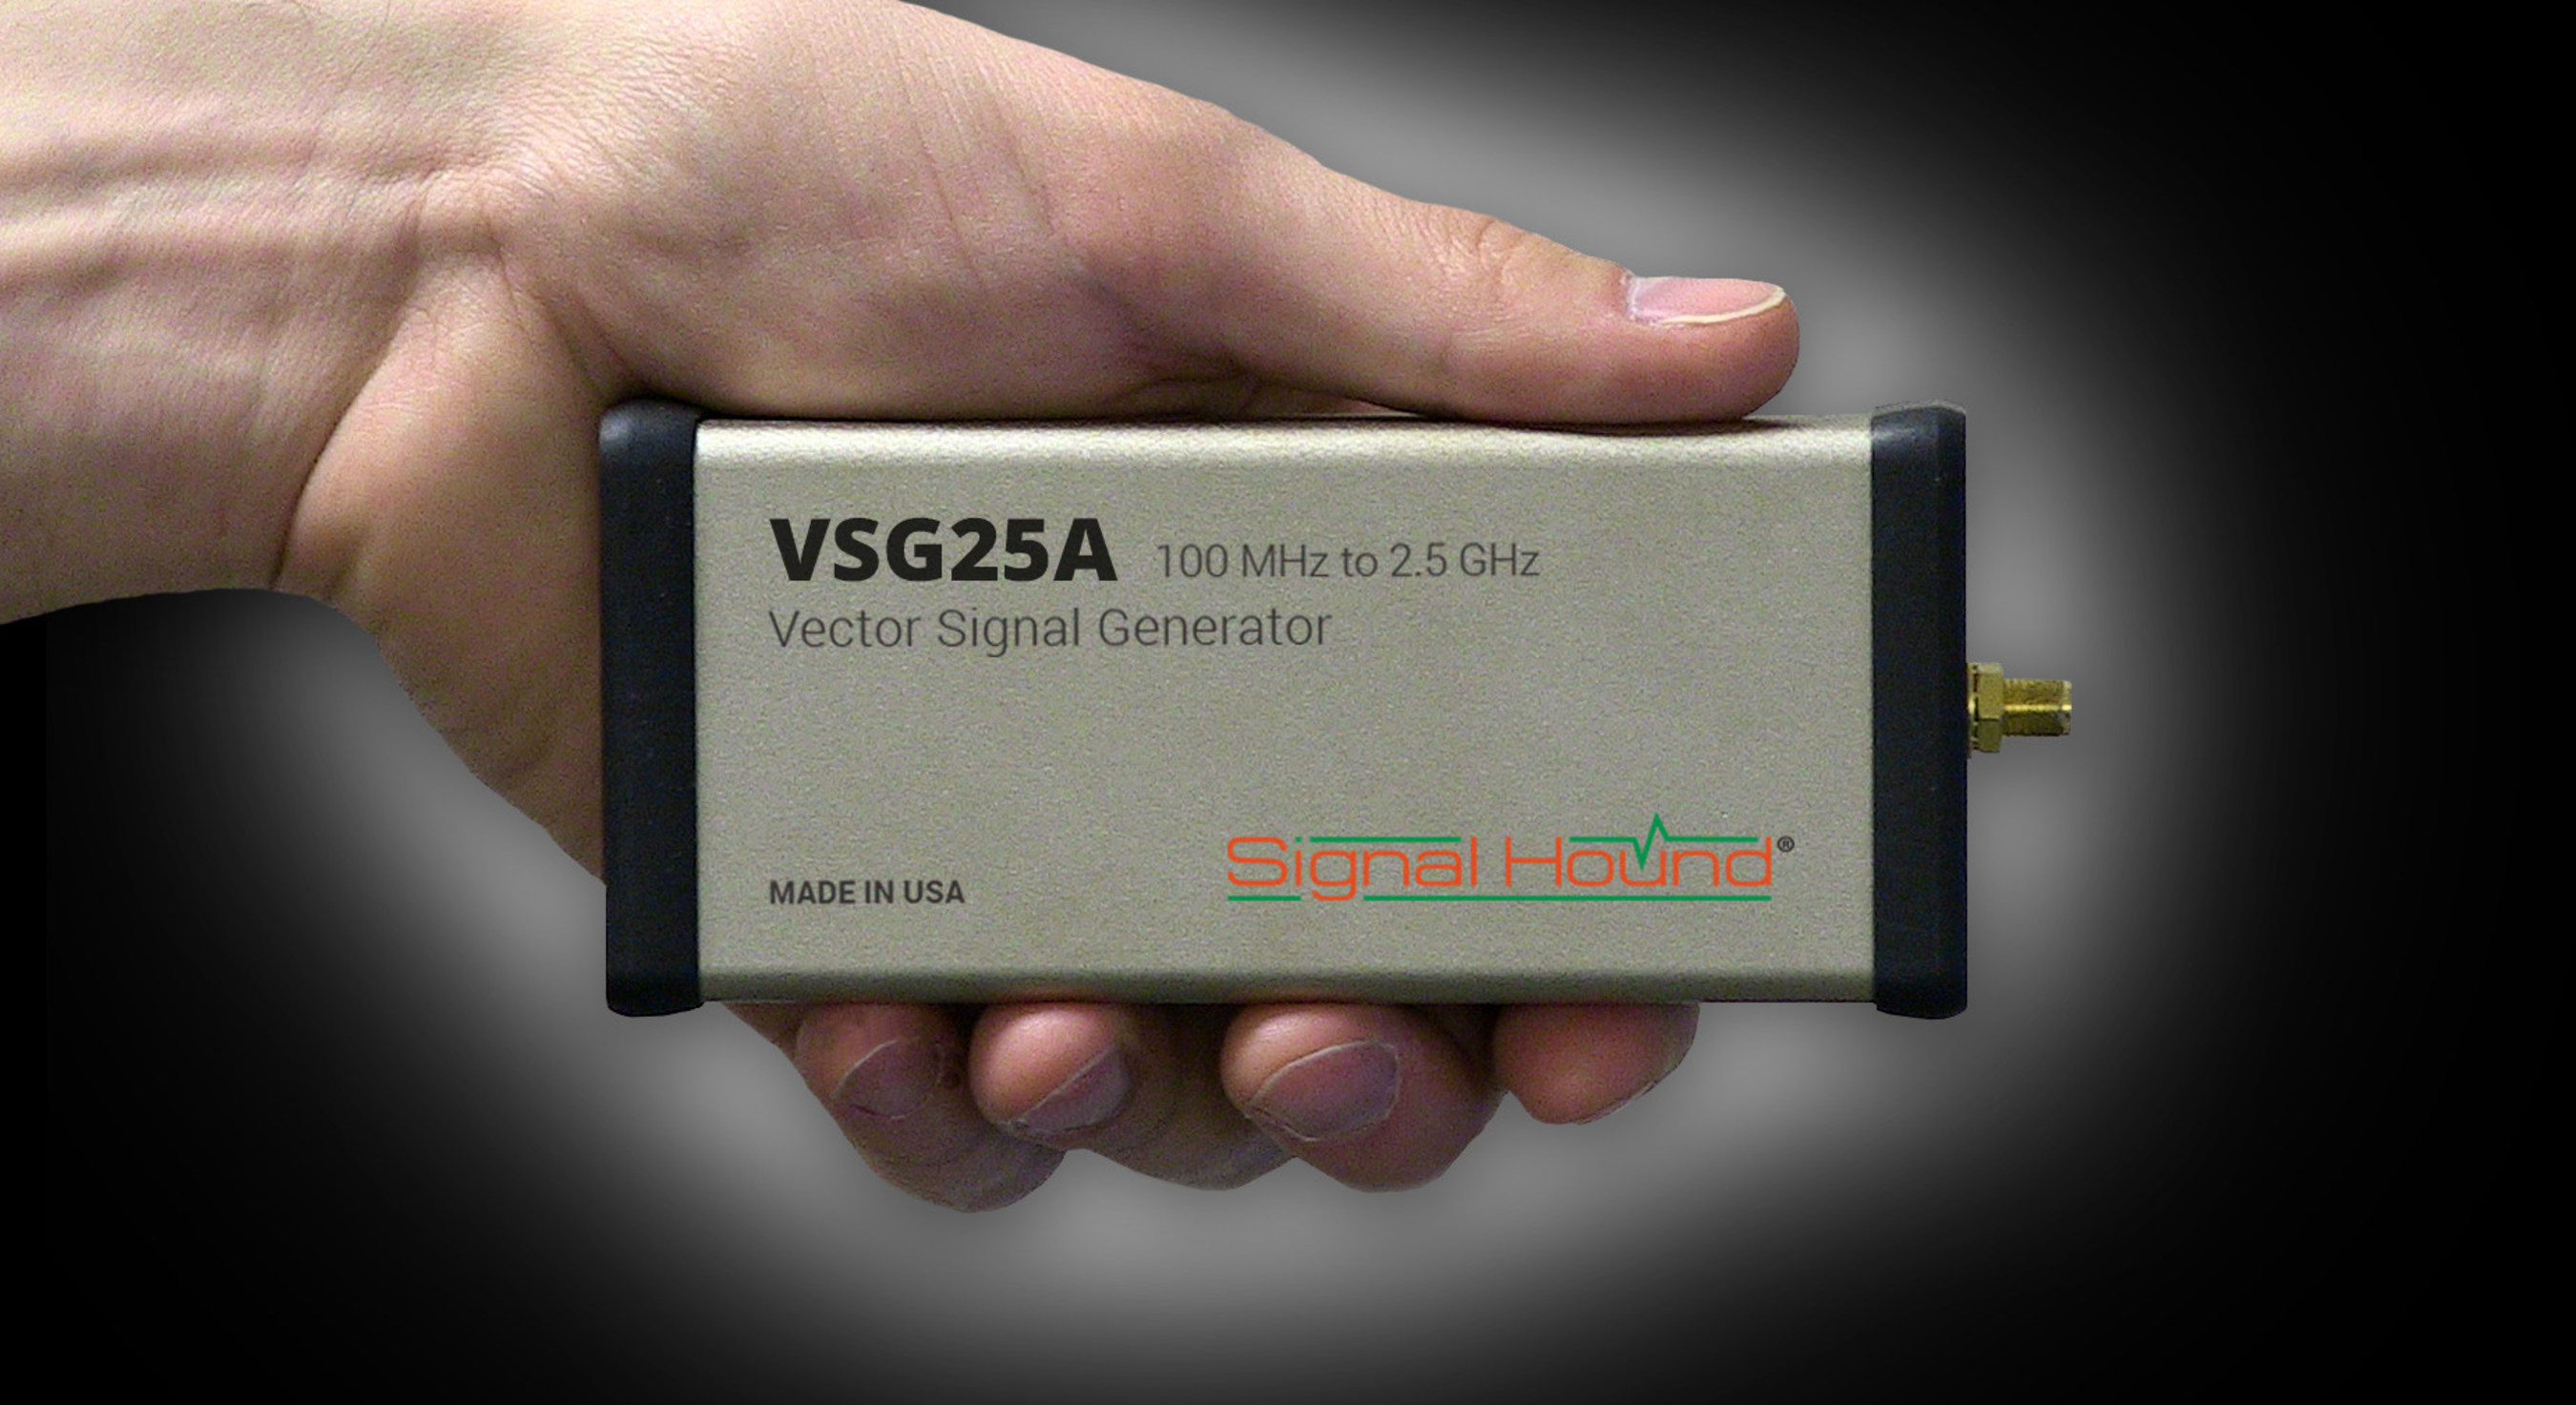 Signal Hound Introduces New VSG25A Vector Signal Generator for $495